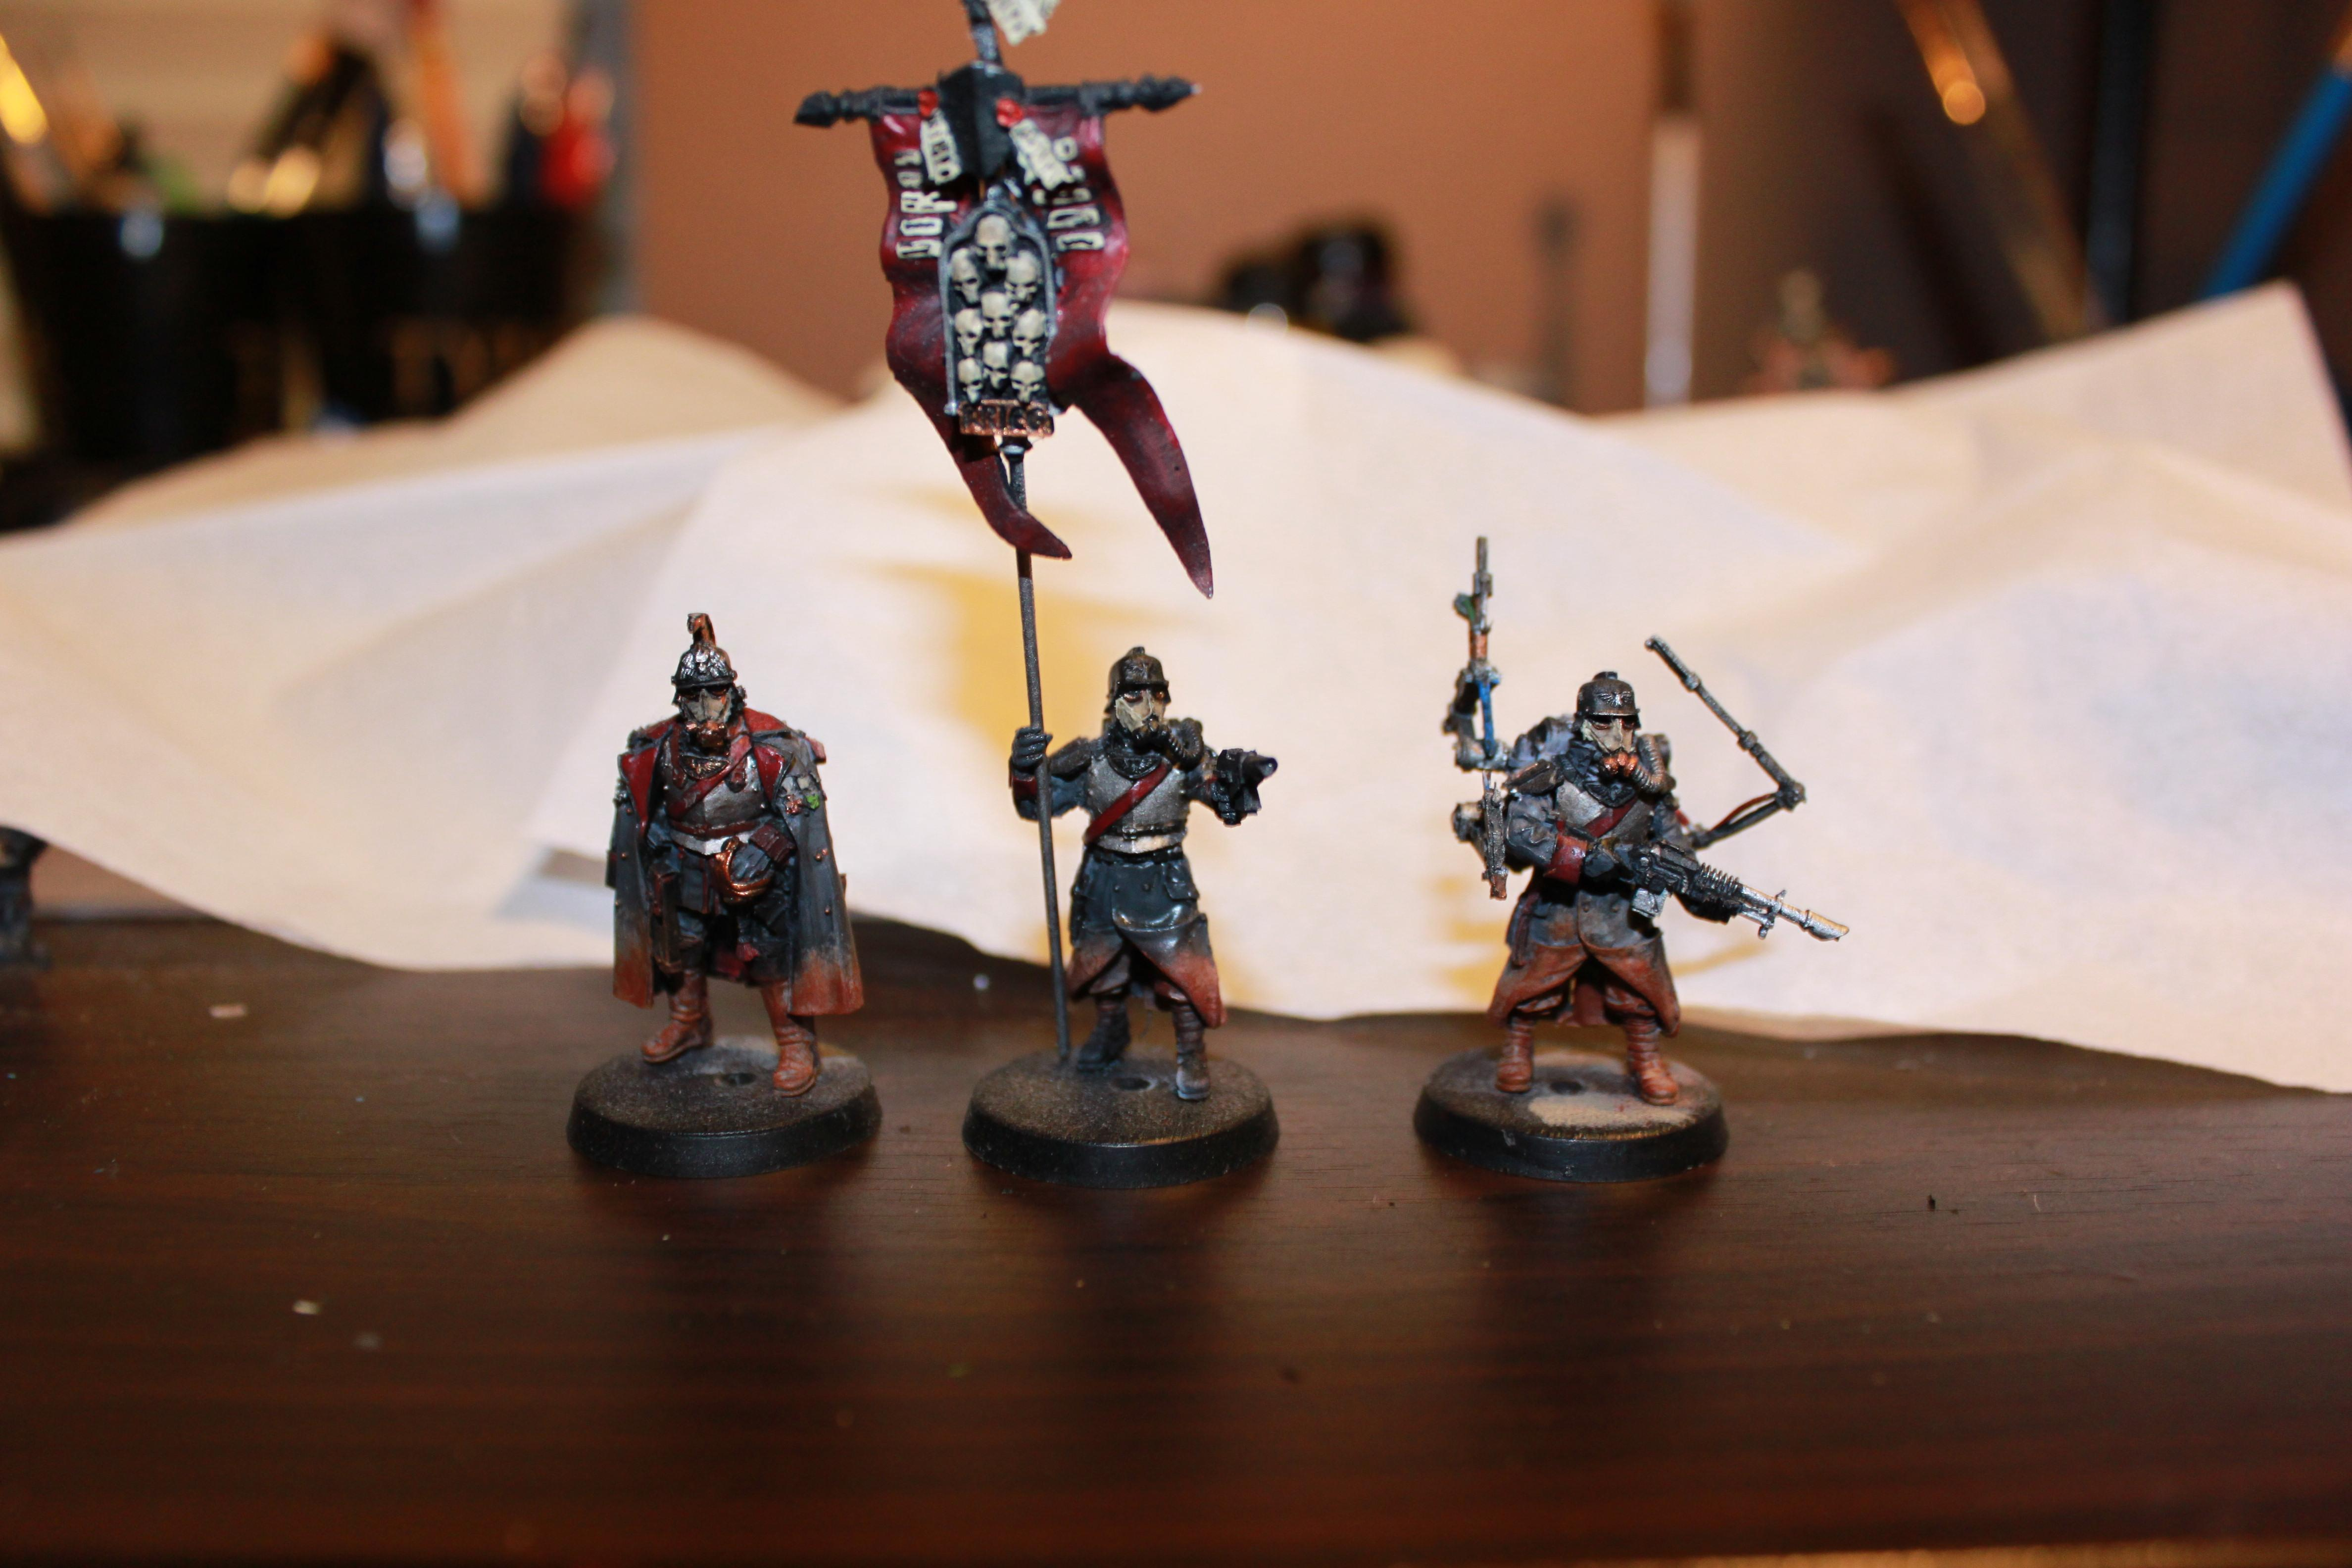 Starting off with the DKoK